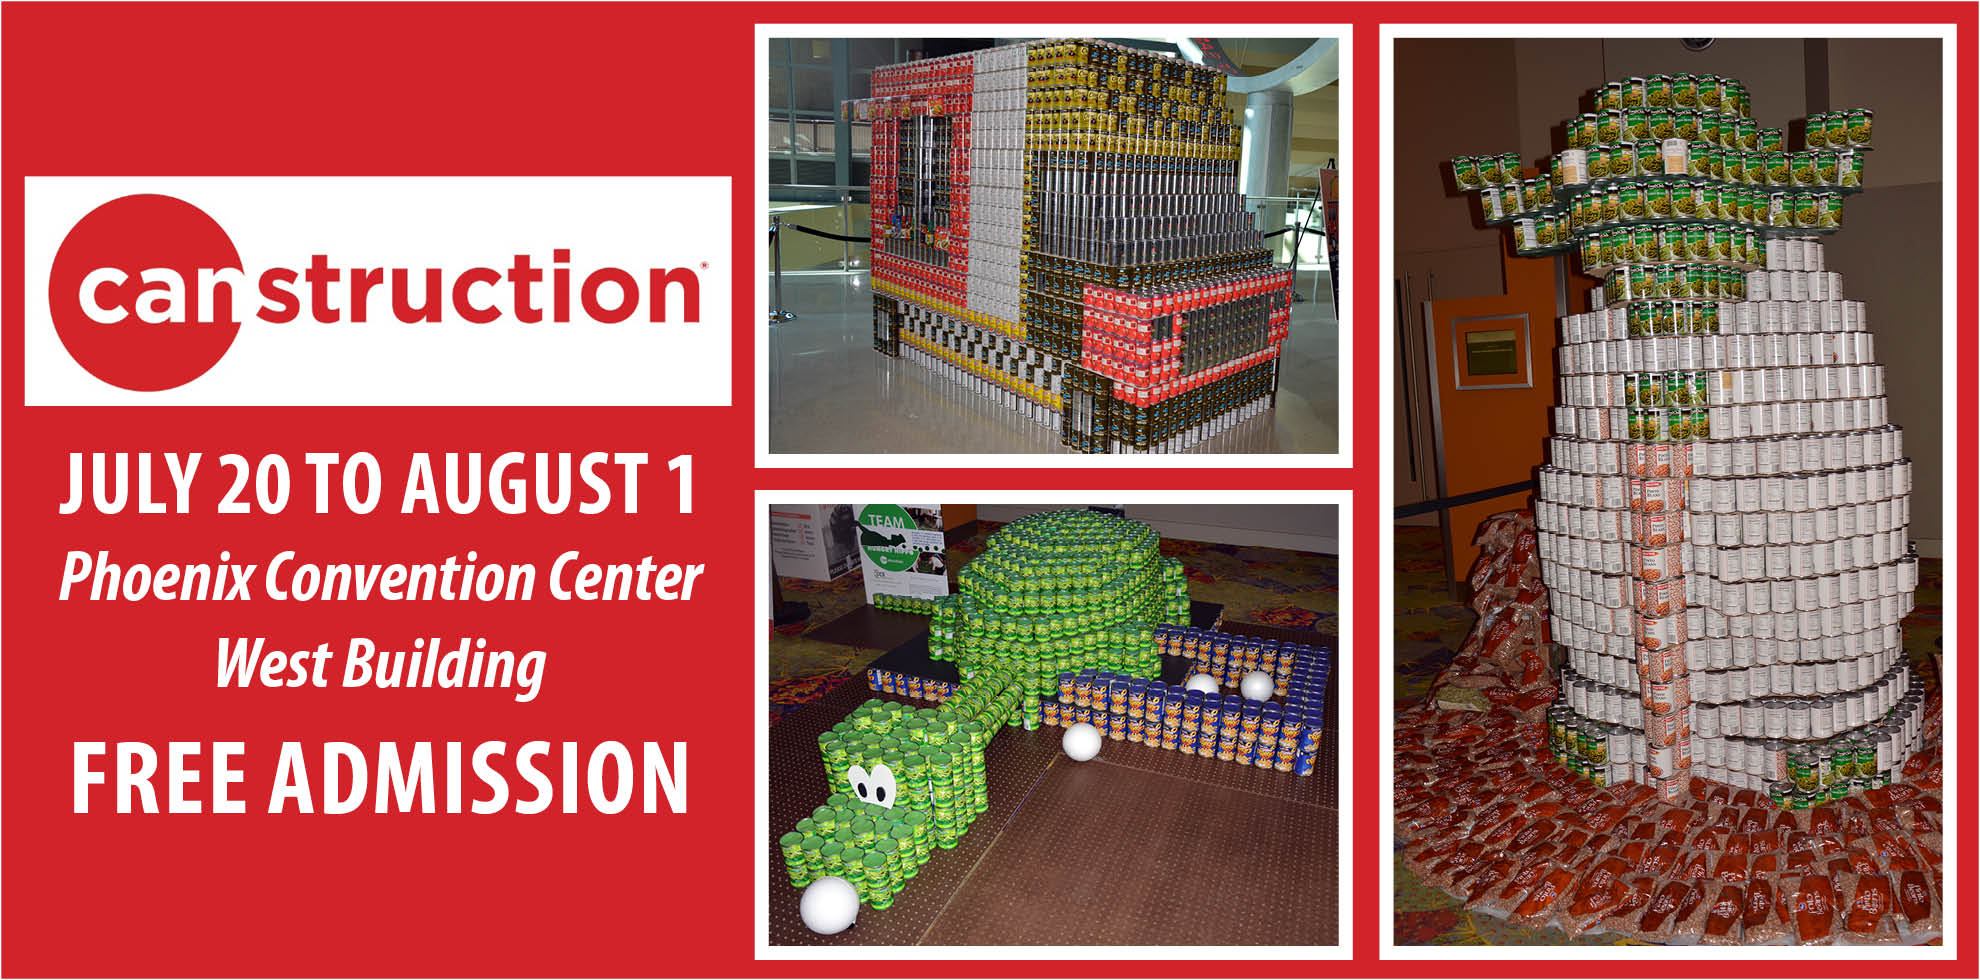 Canstruction rotating